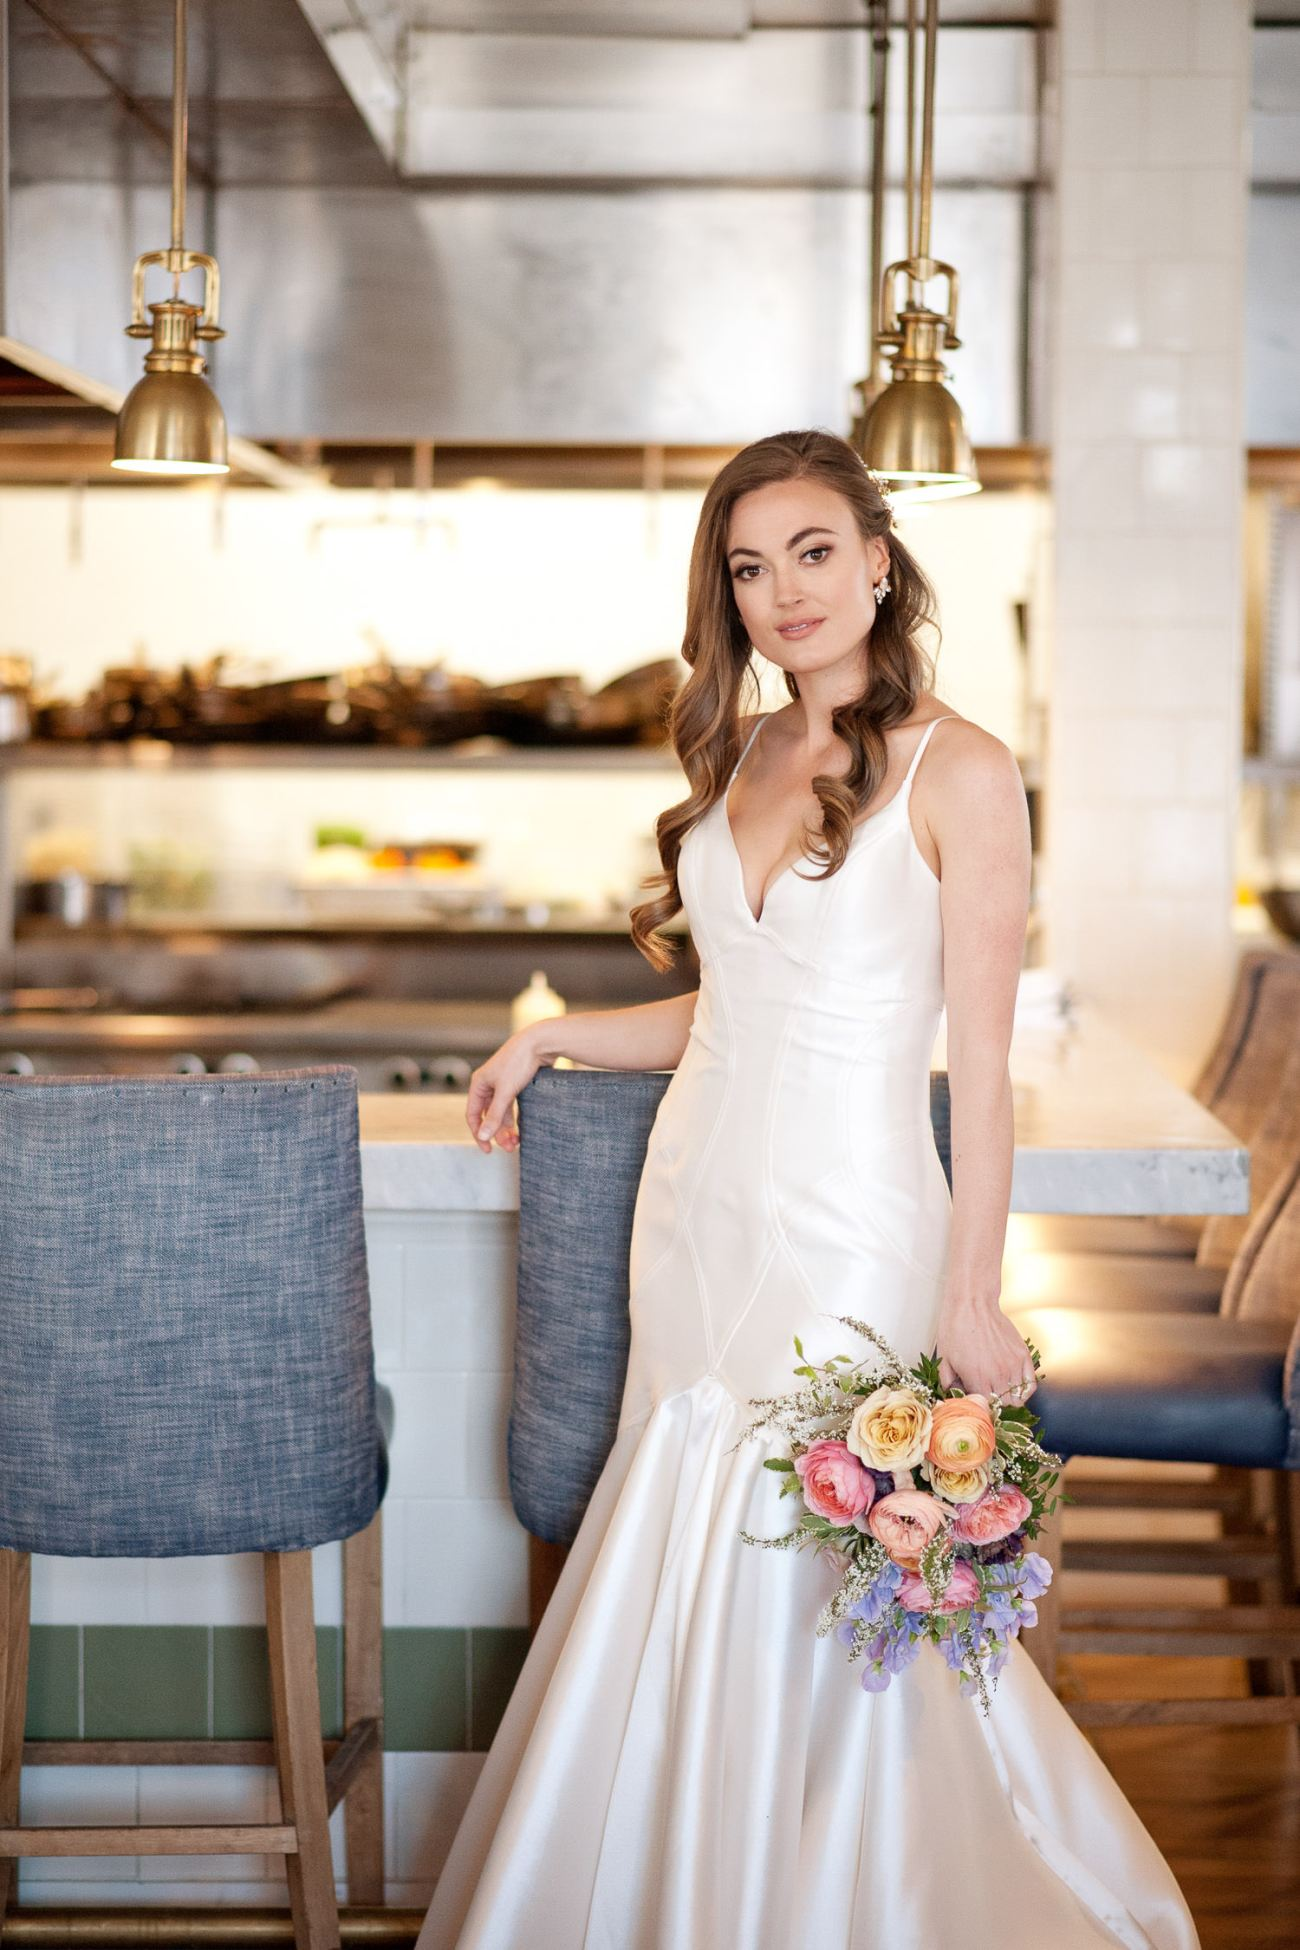 Spring bride at The Nash Weddings captured by Tara Whittaker Photography